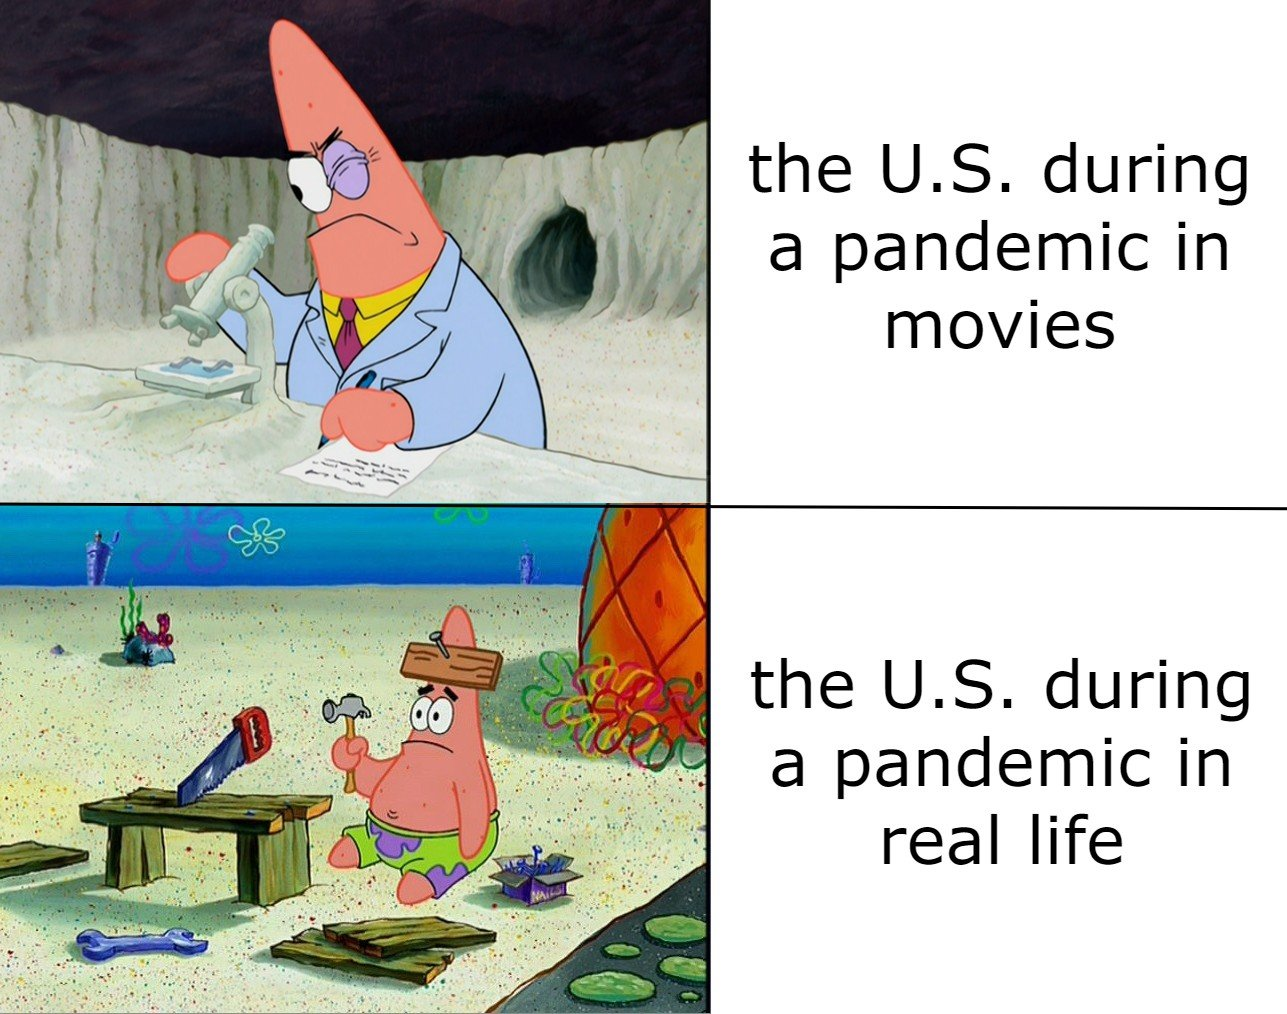 The US during a pandemic